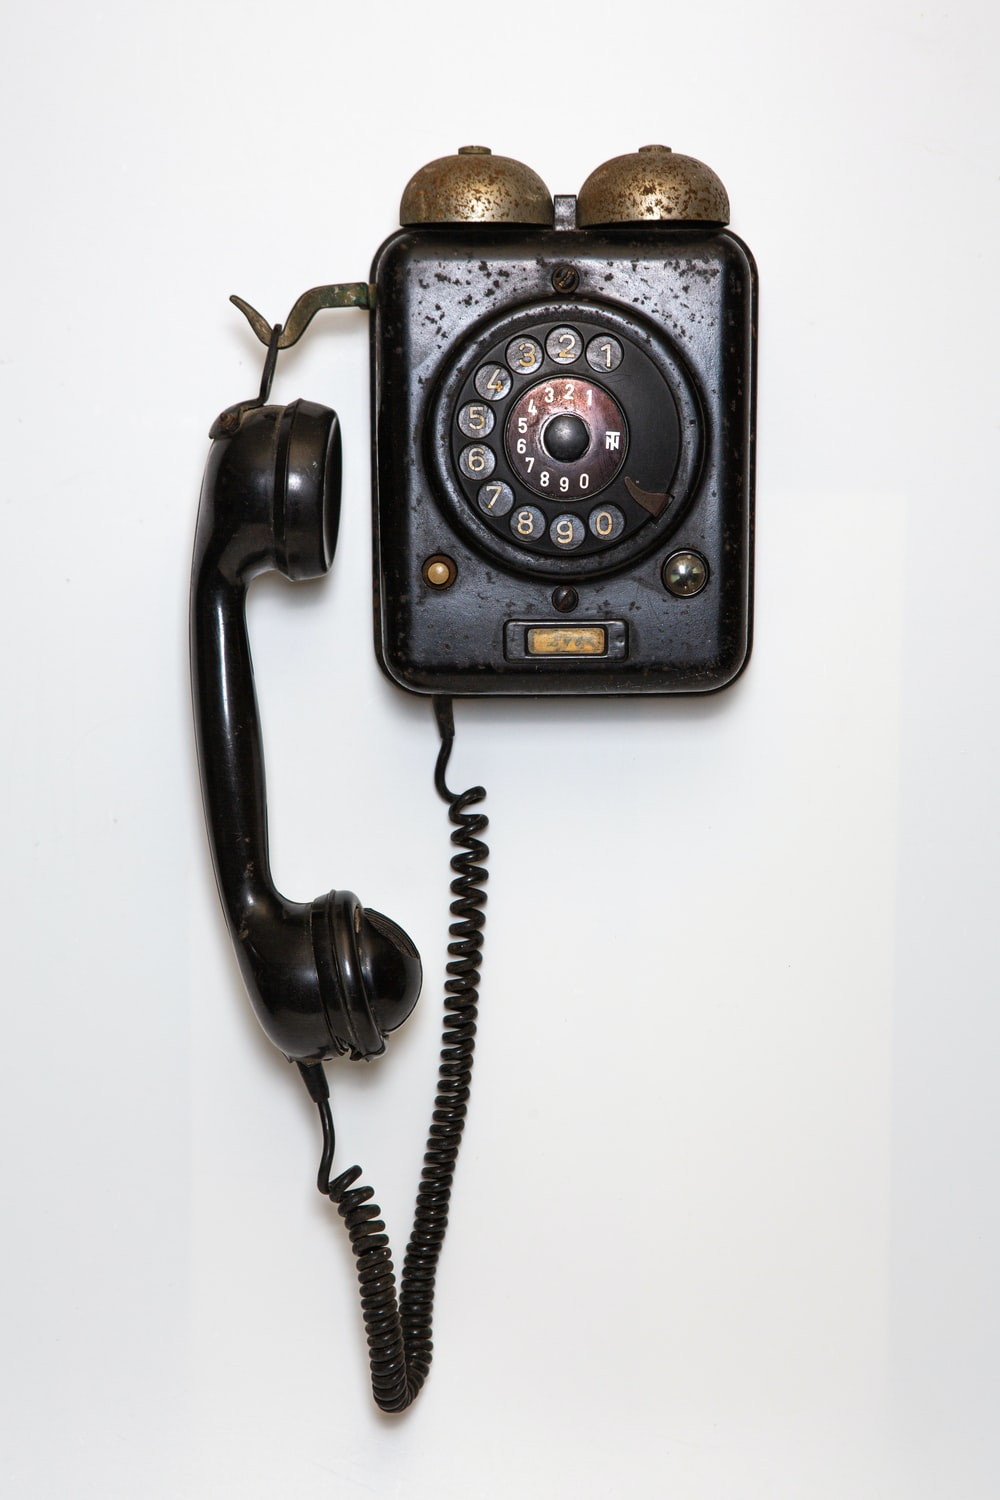 black and gray corded telephone